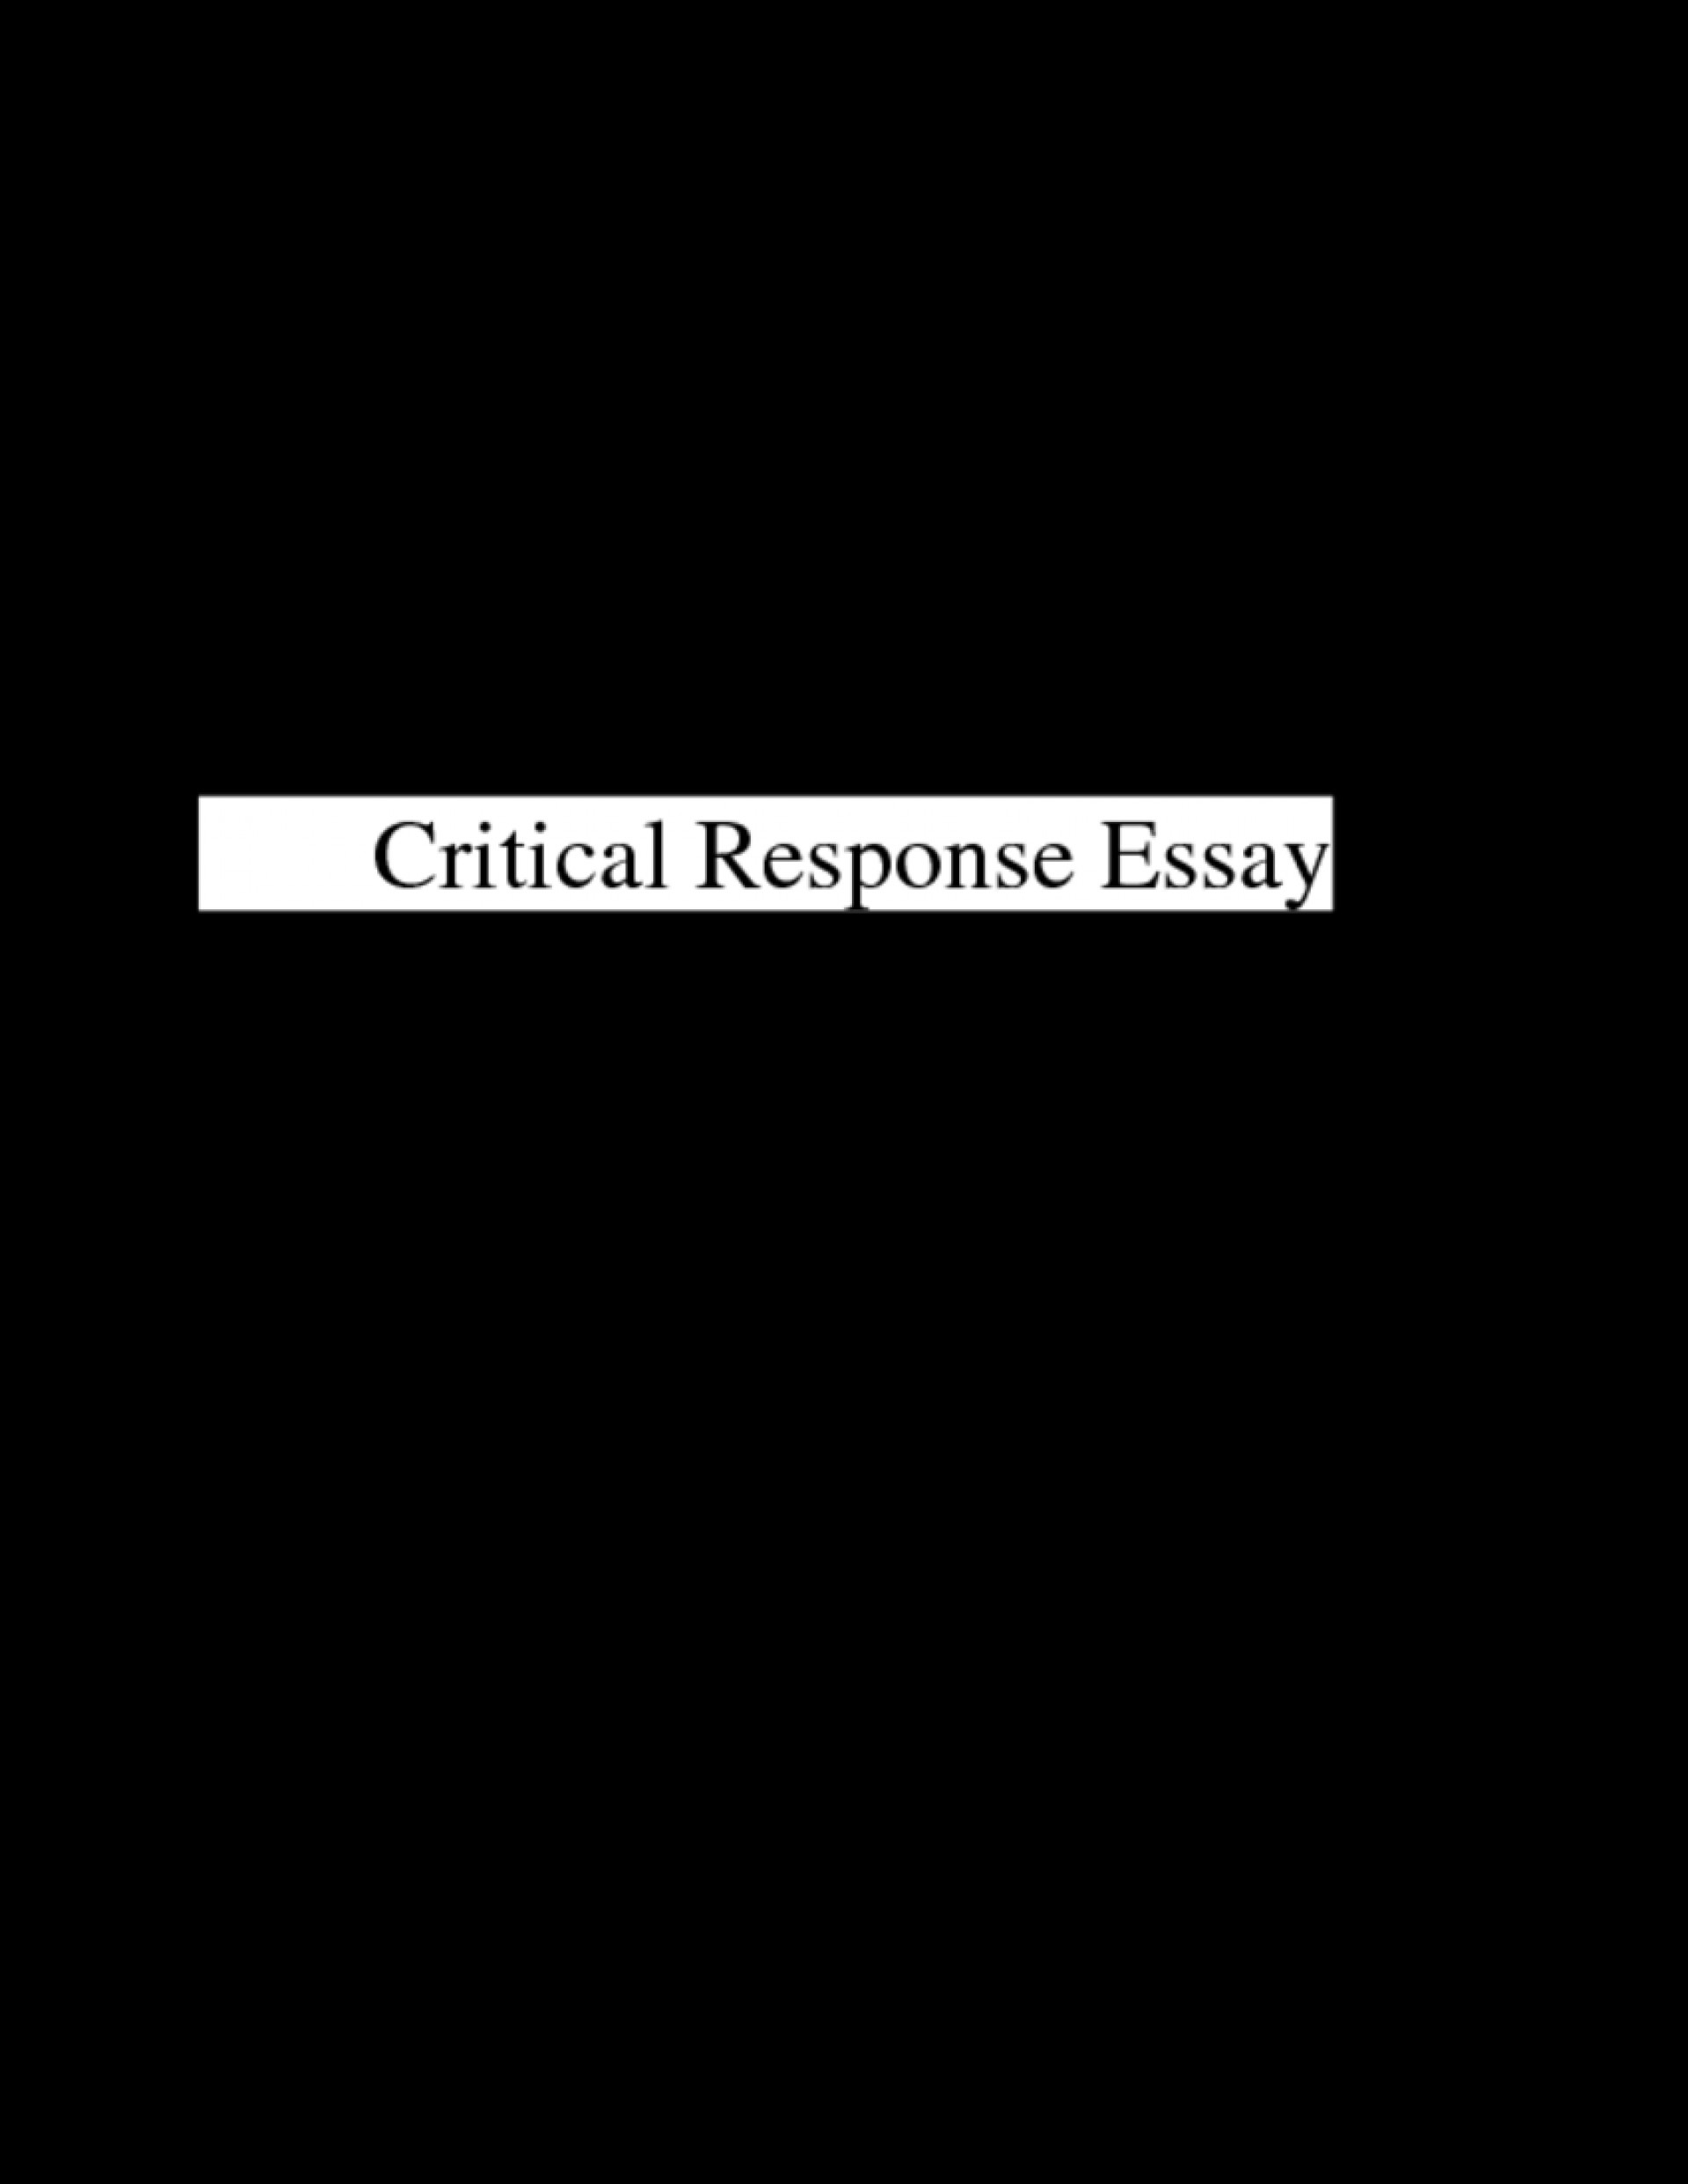 006 Fixed Essay Laenglishpage0 Example Critical Singular Response Sample Rough Draft 1920